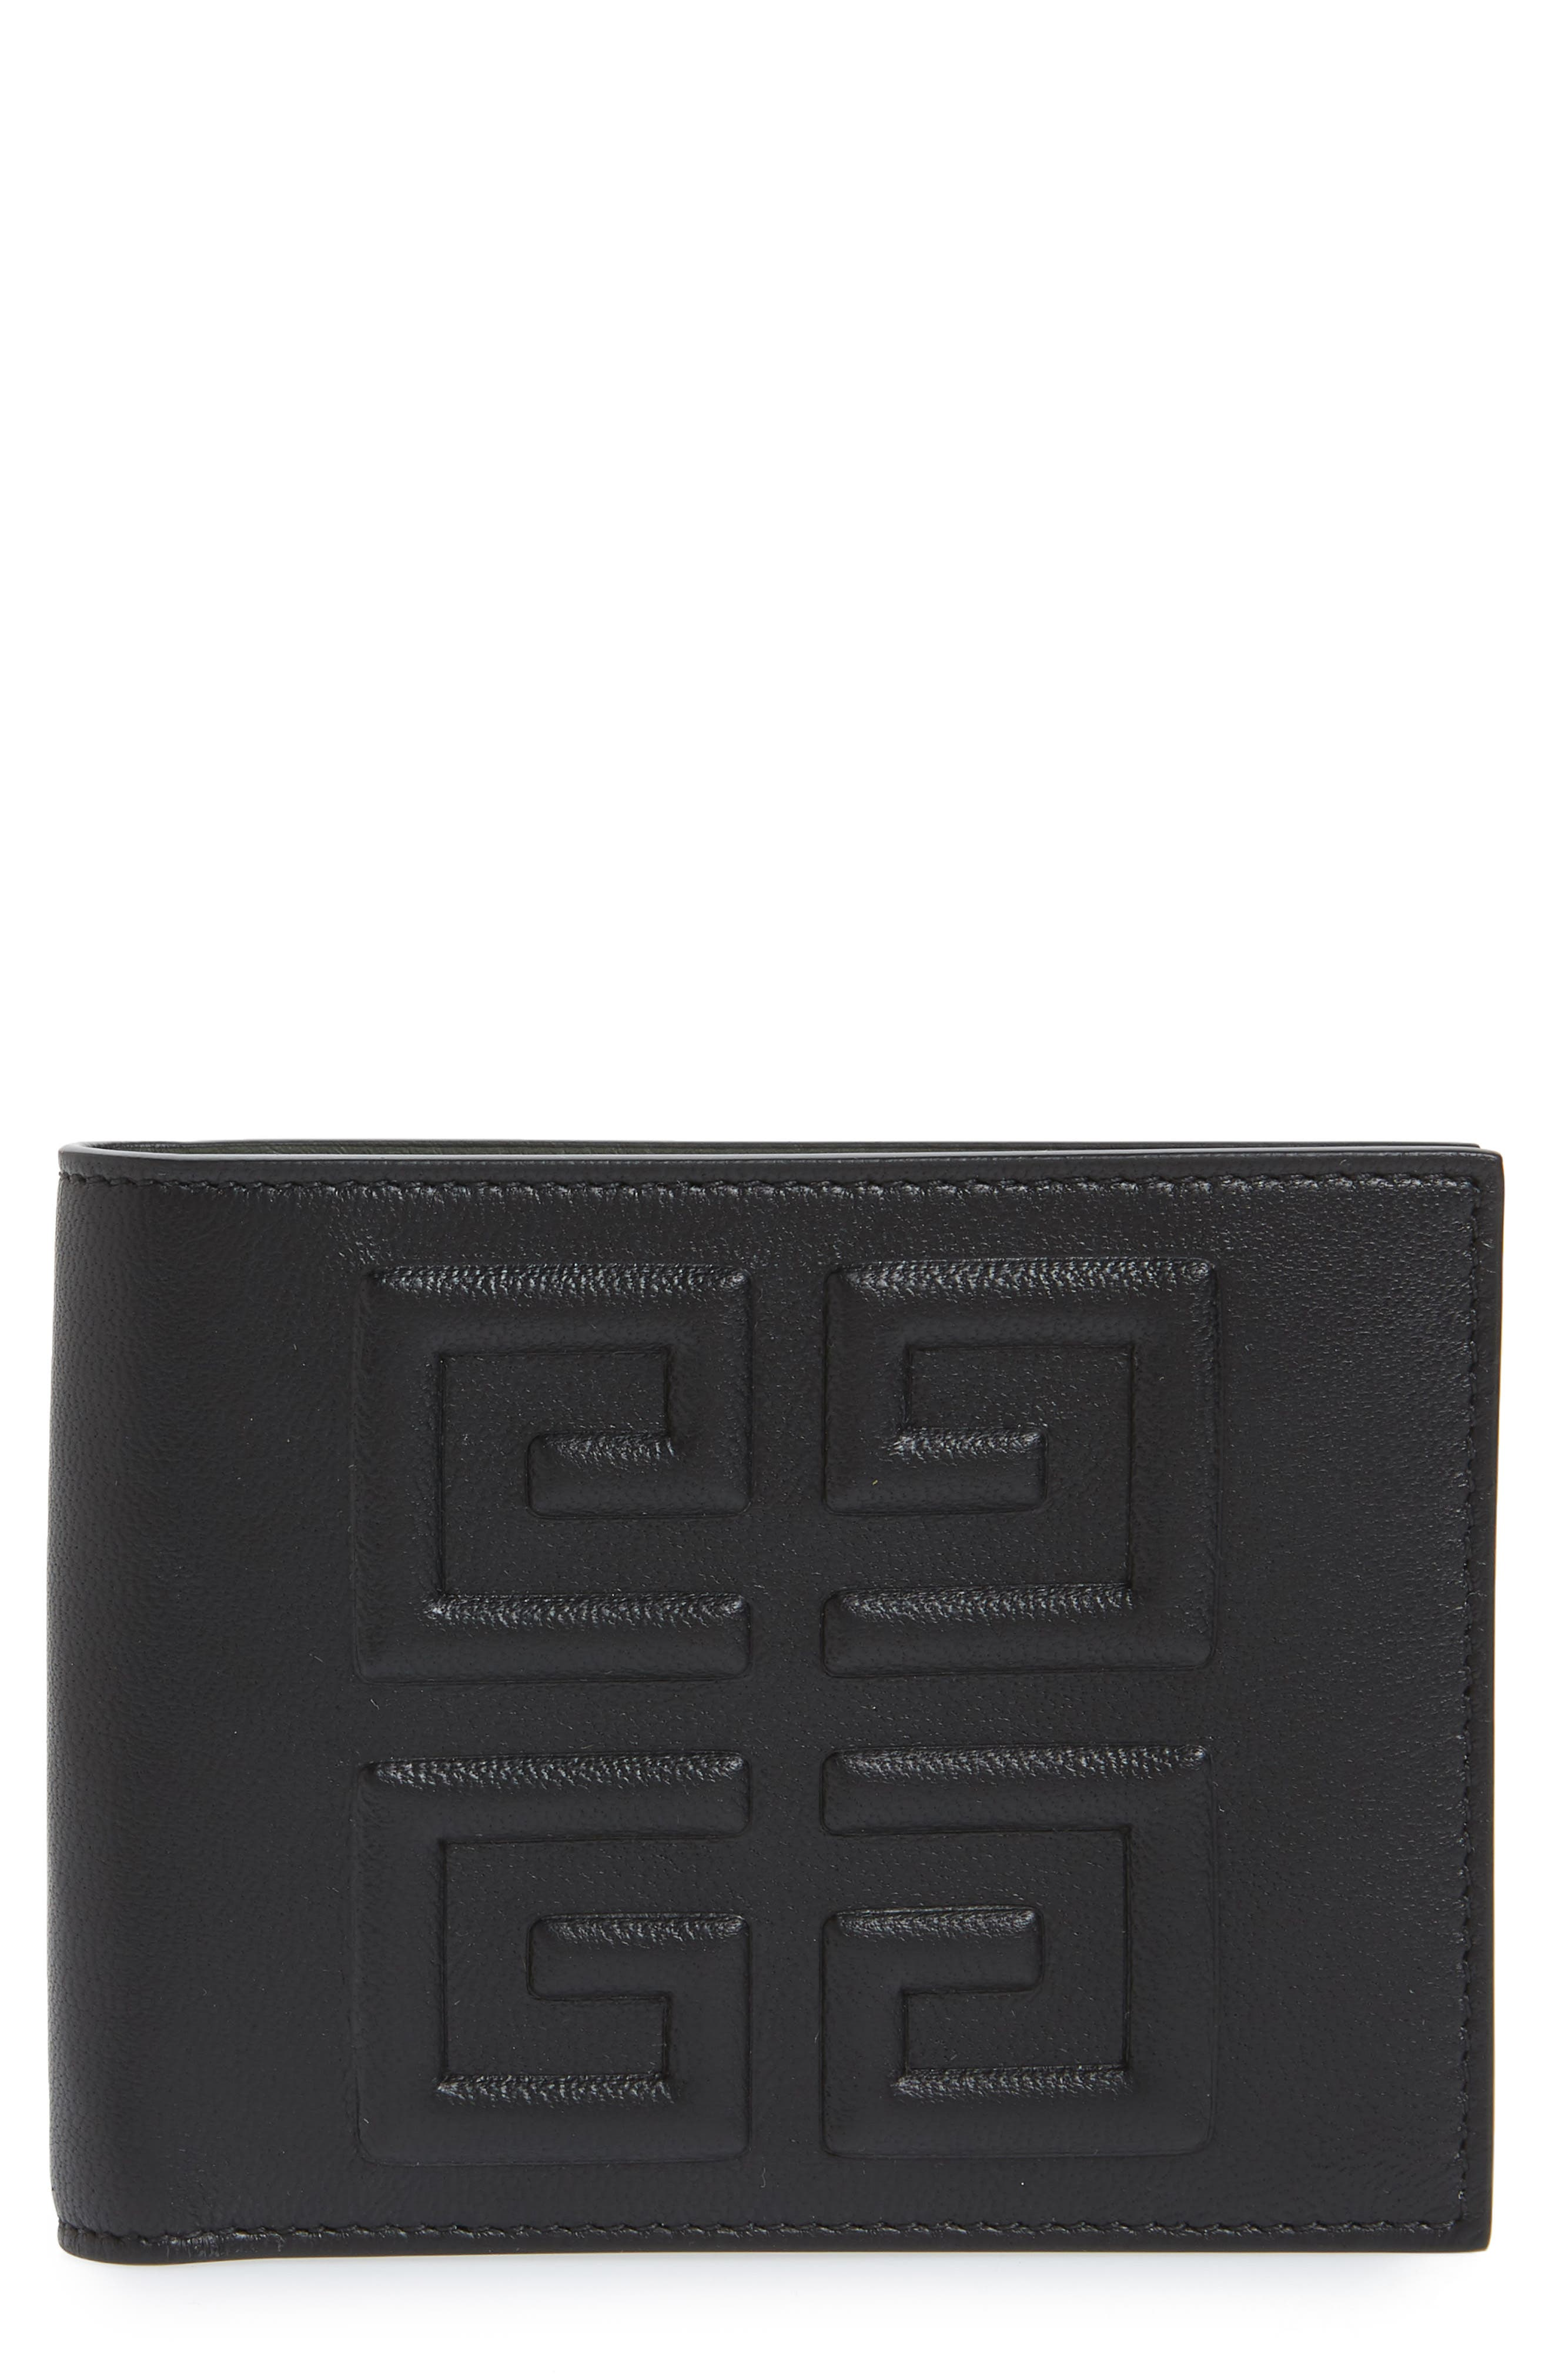 Embossed 4G Leather Bifold Wallet,                             Main thumbnail 1, color,                             BLACK/ KHAKI